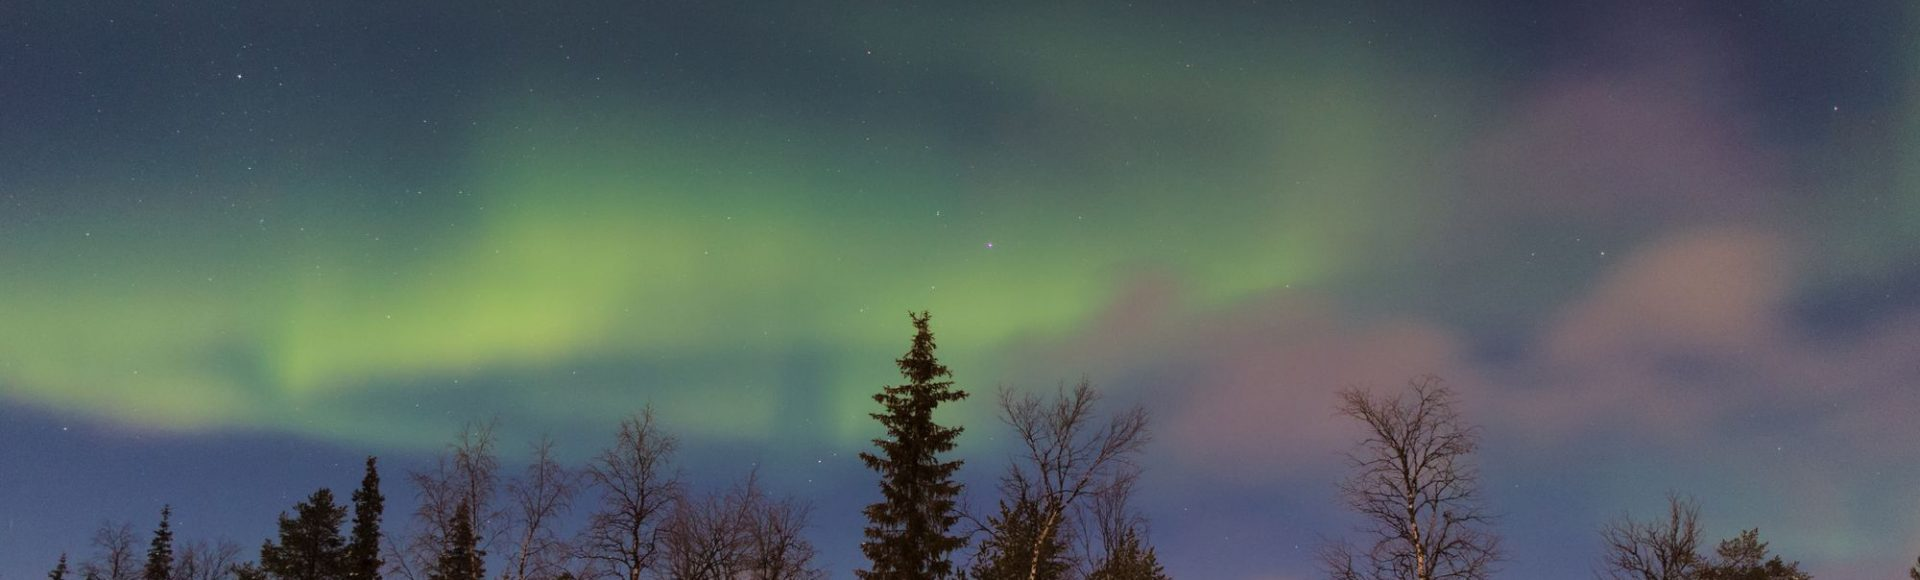 Offer: The Northern Lights Trip in Sweden You Can't Miss